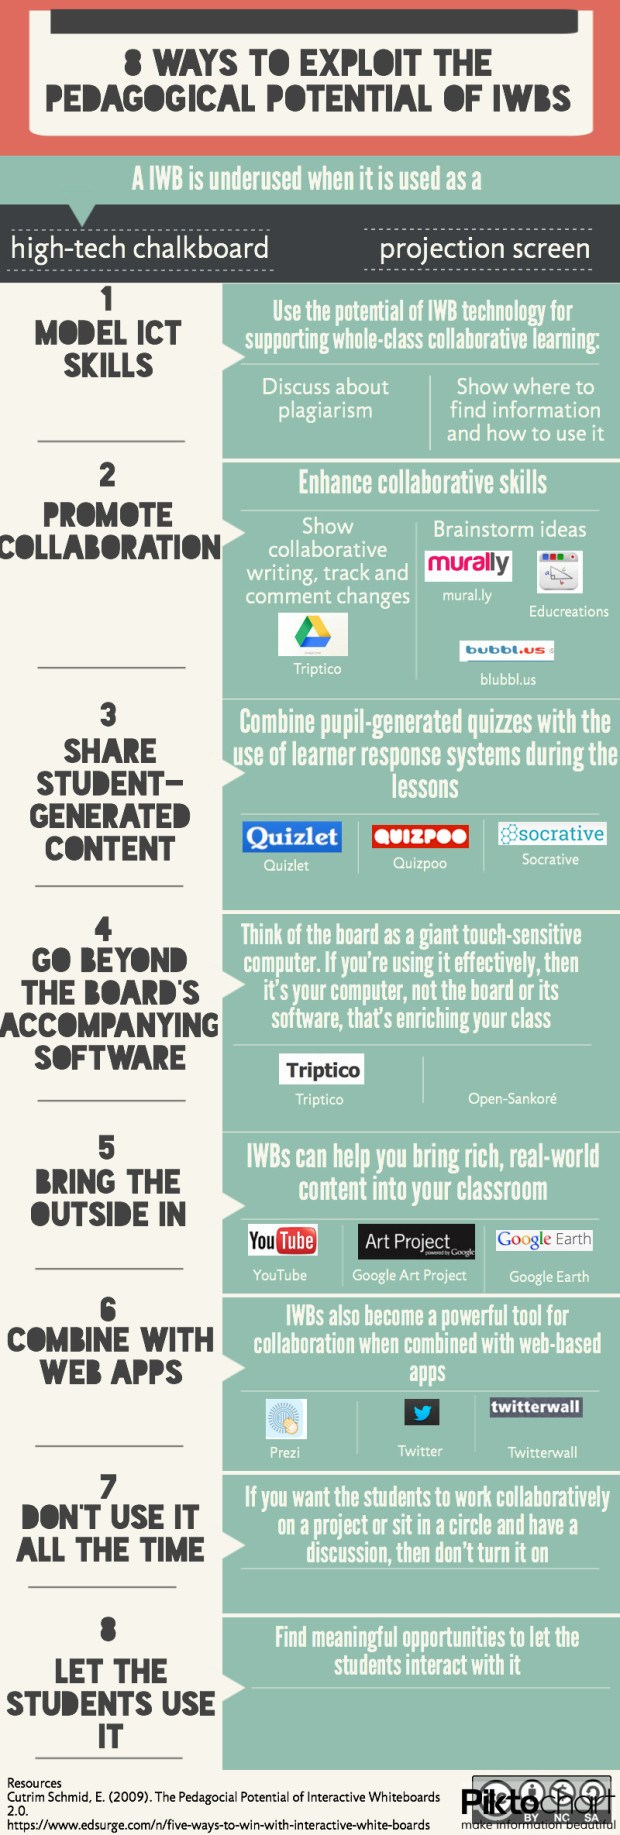 Exploiting-the-Pedacogical-Potential-of-Interactive-Whiteboards-Infographic